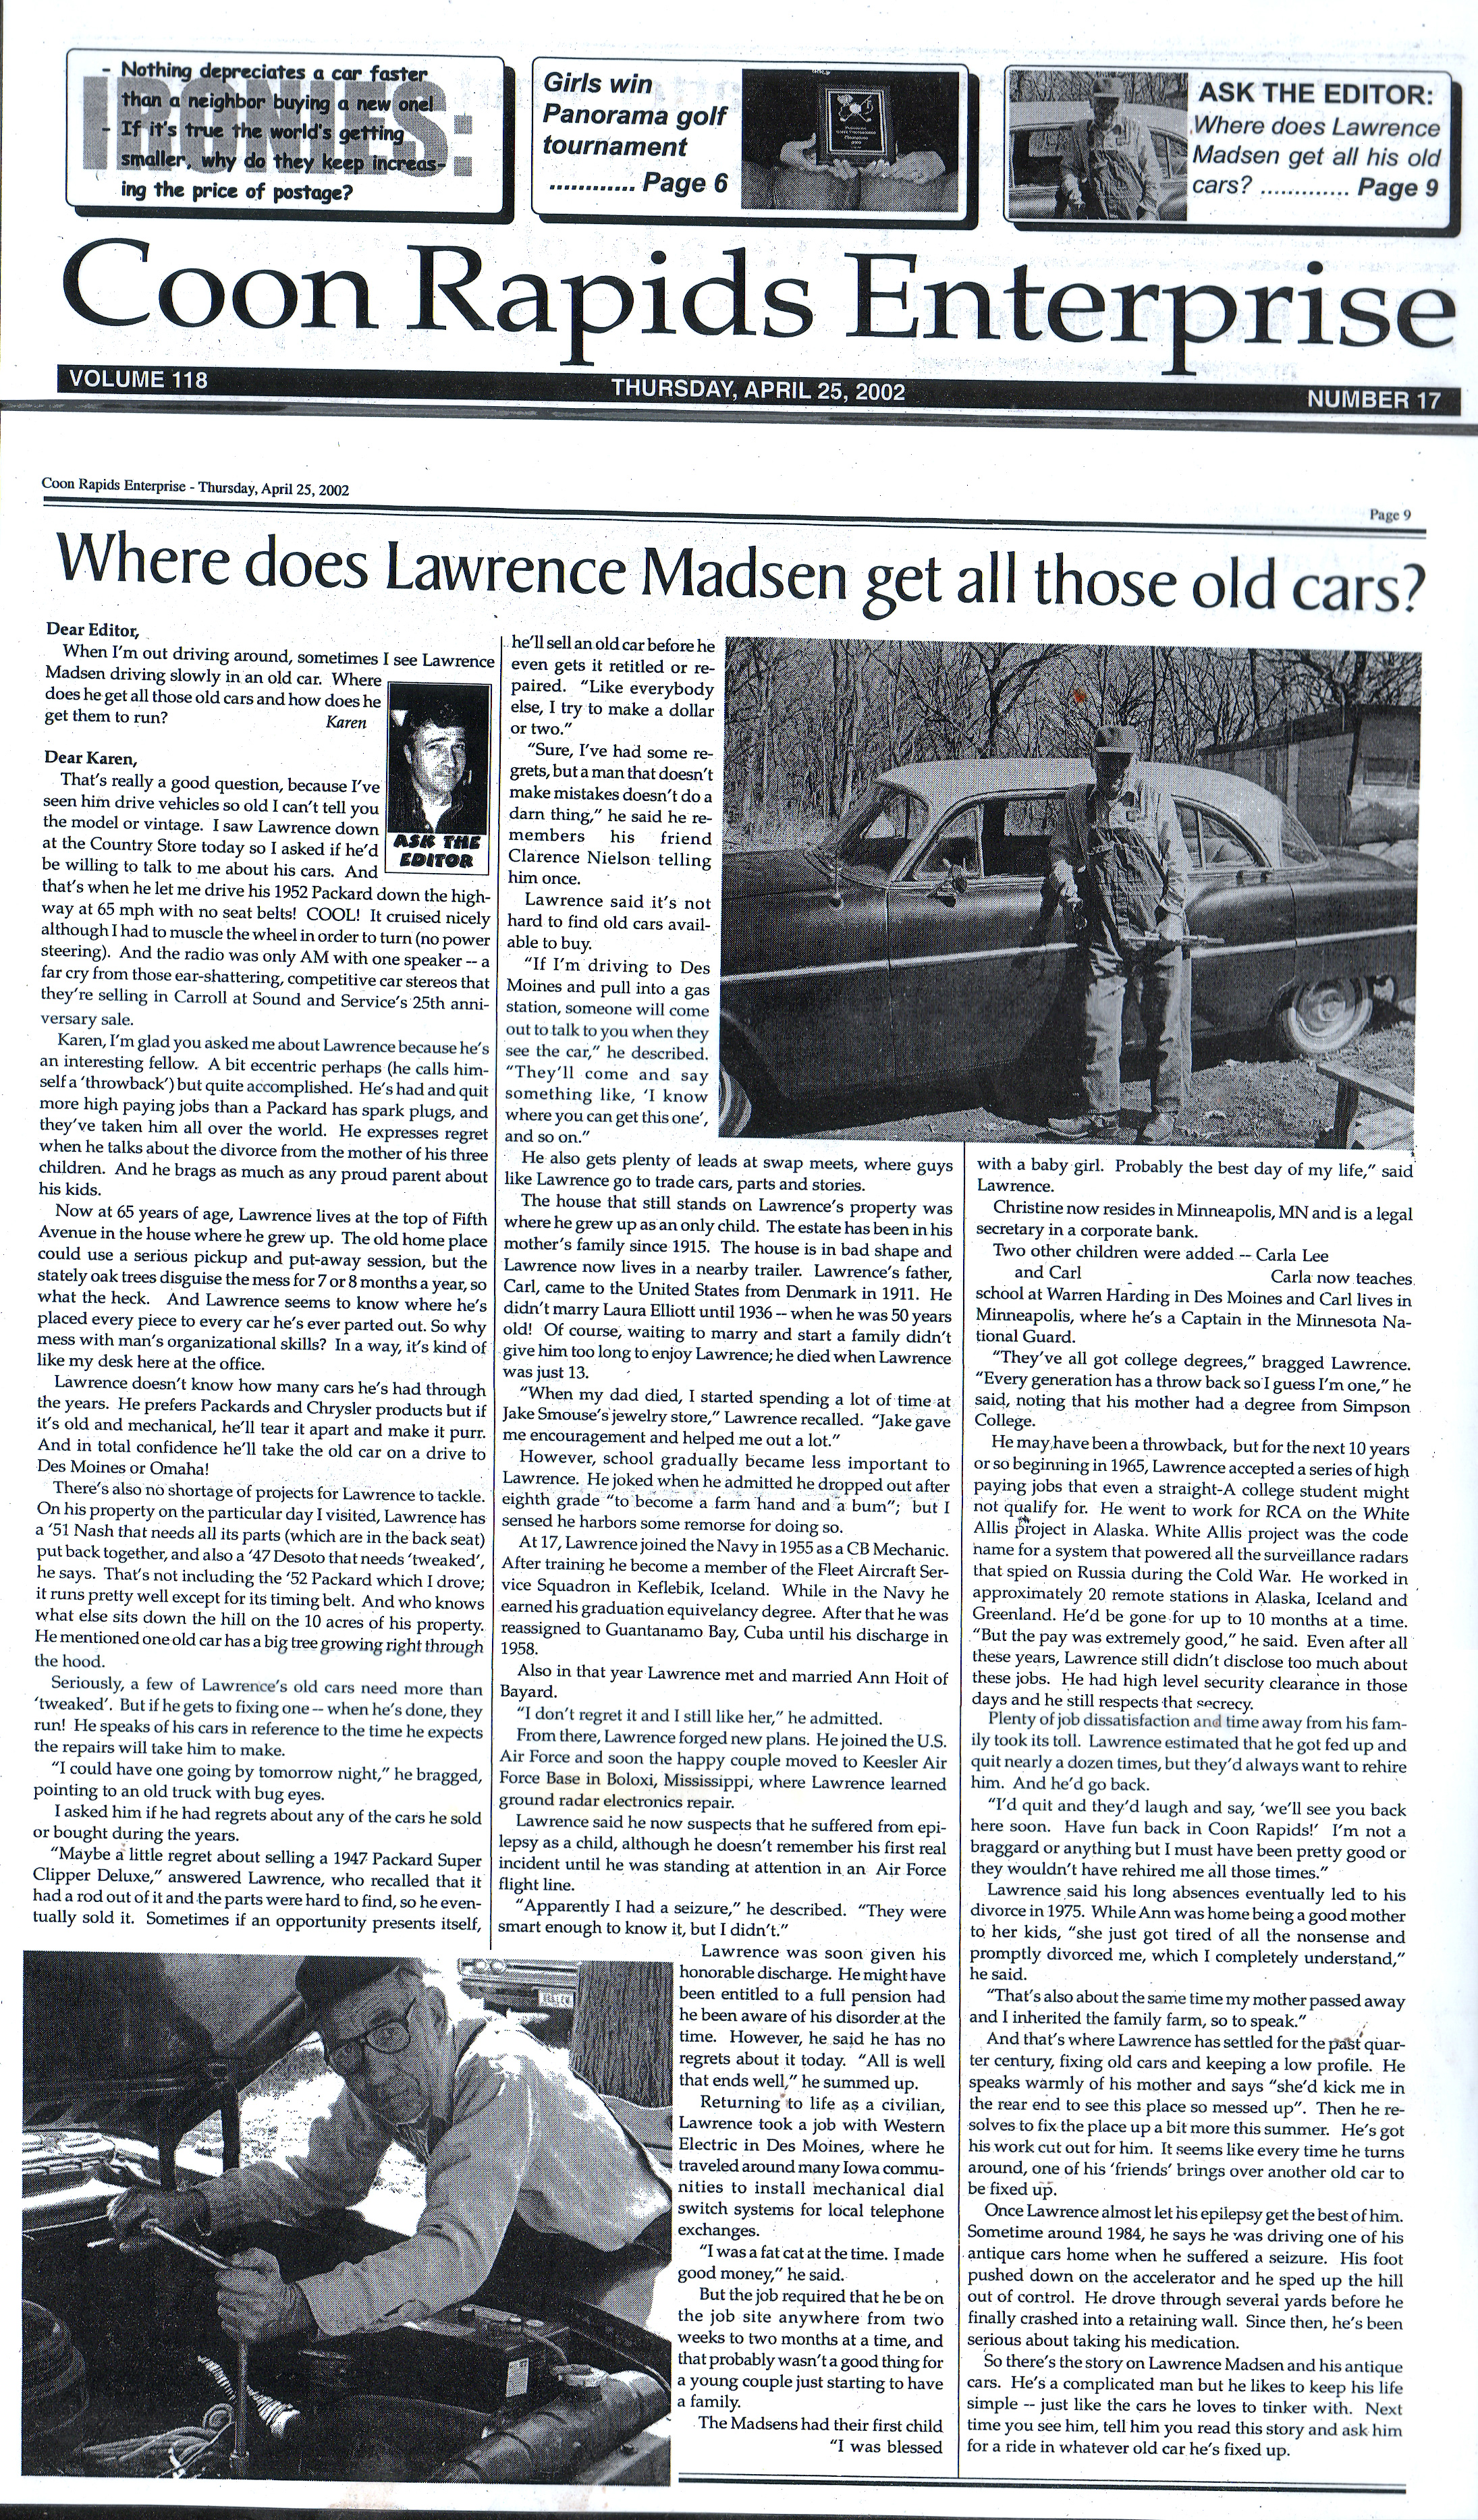 lawrence-madsen-article-coon-rapids-enterprise_2002_04-25